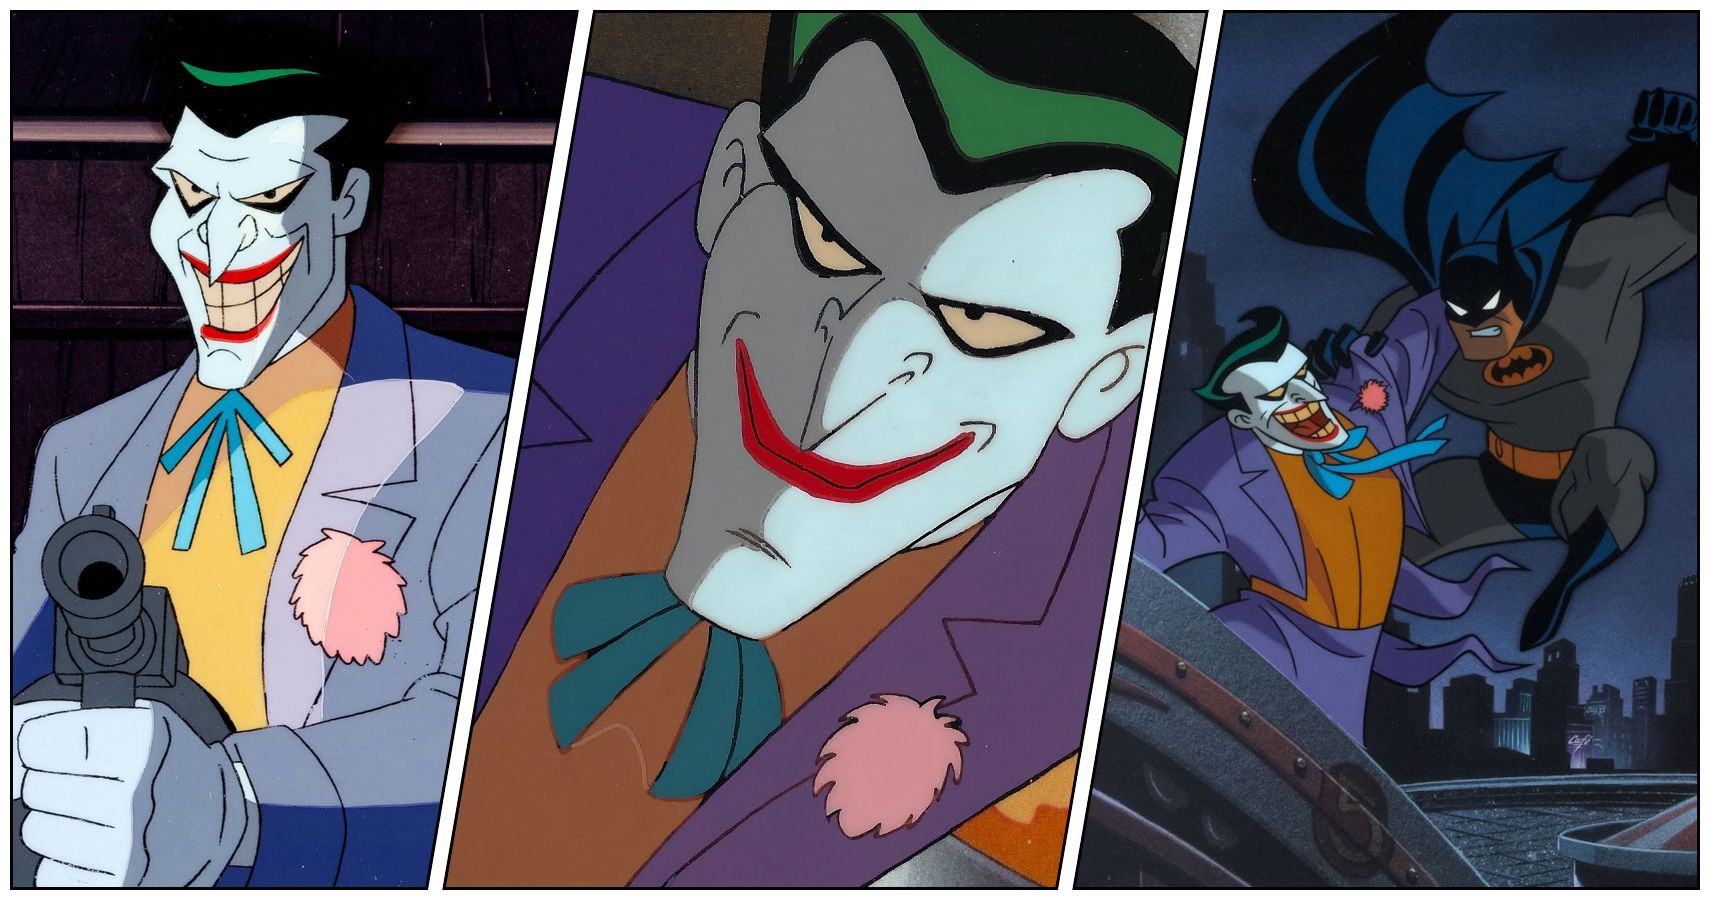 Batman: The Animated Series: The 10 Best Joker Episodes, Ranked